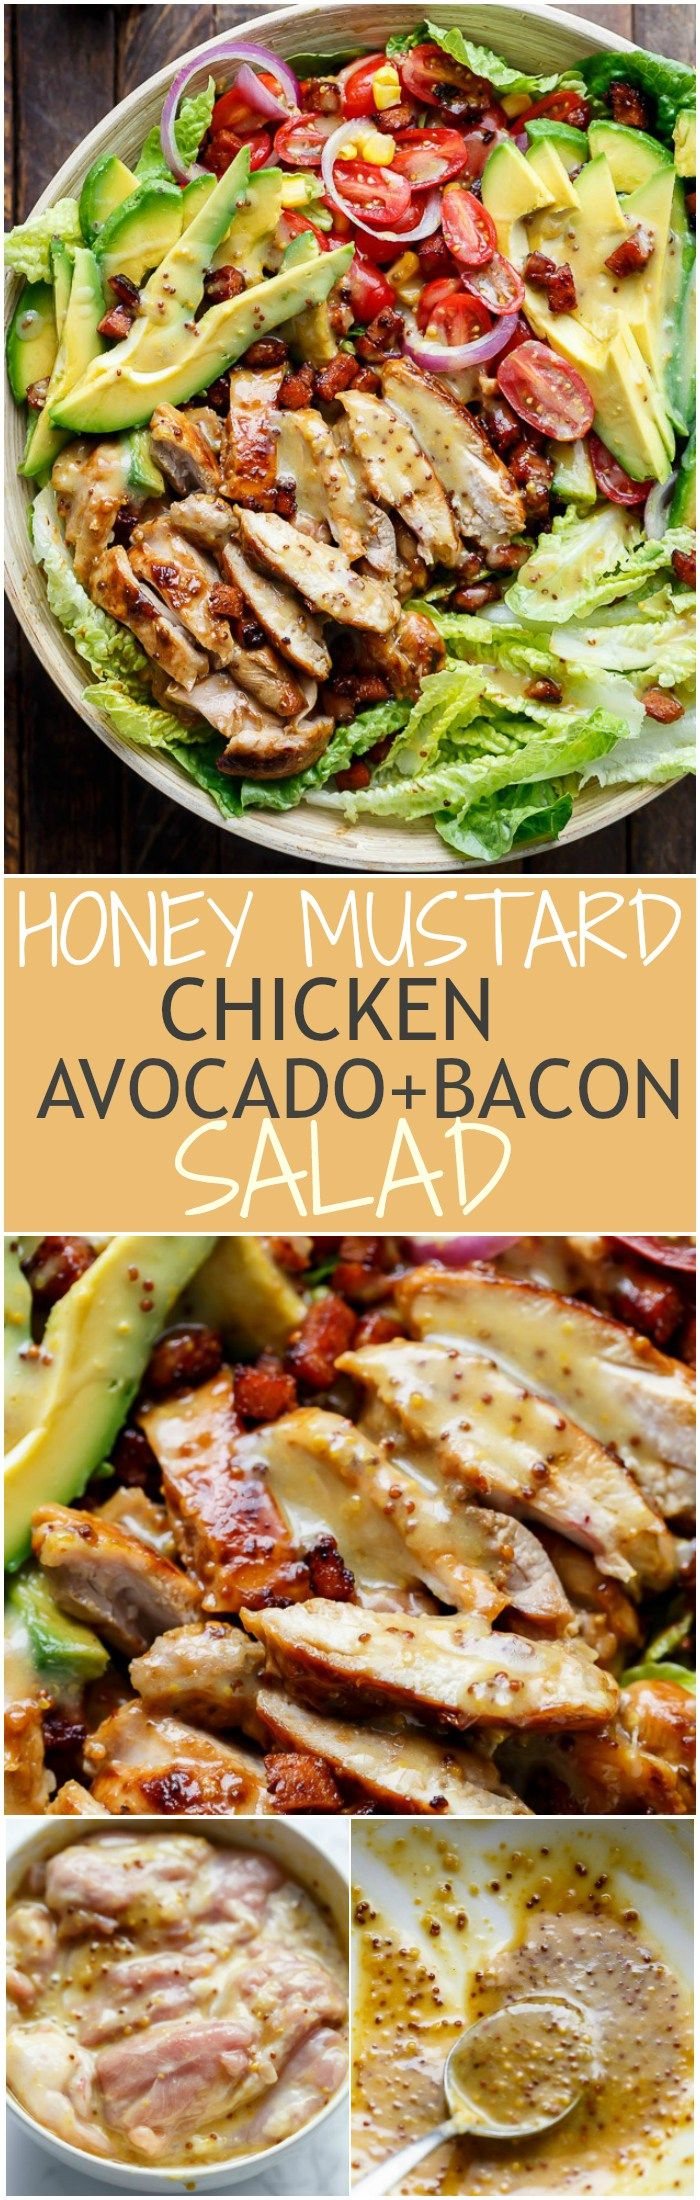 Honey Mustard Chicken, Avocado + Bacon Salad, with a crazy good Honey Mustard dressing withOUT mayonnaise or yogurt! And only 5 ingredients! | http://cafedelites.stfi.re: